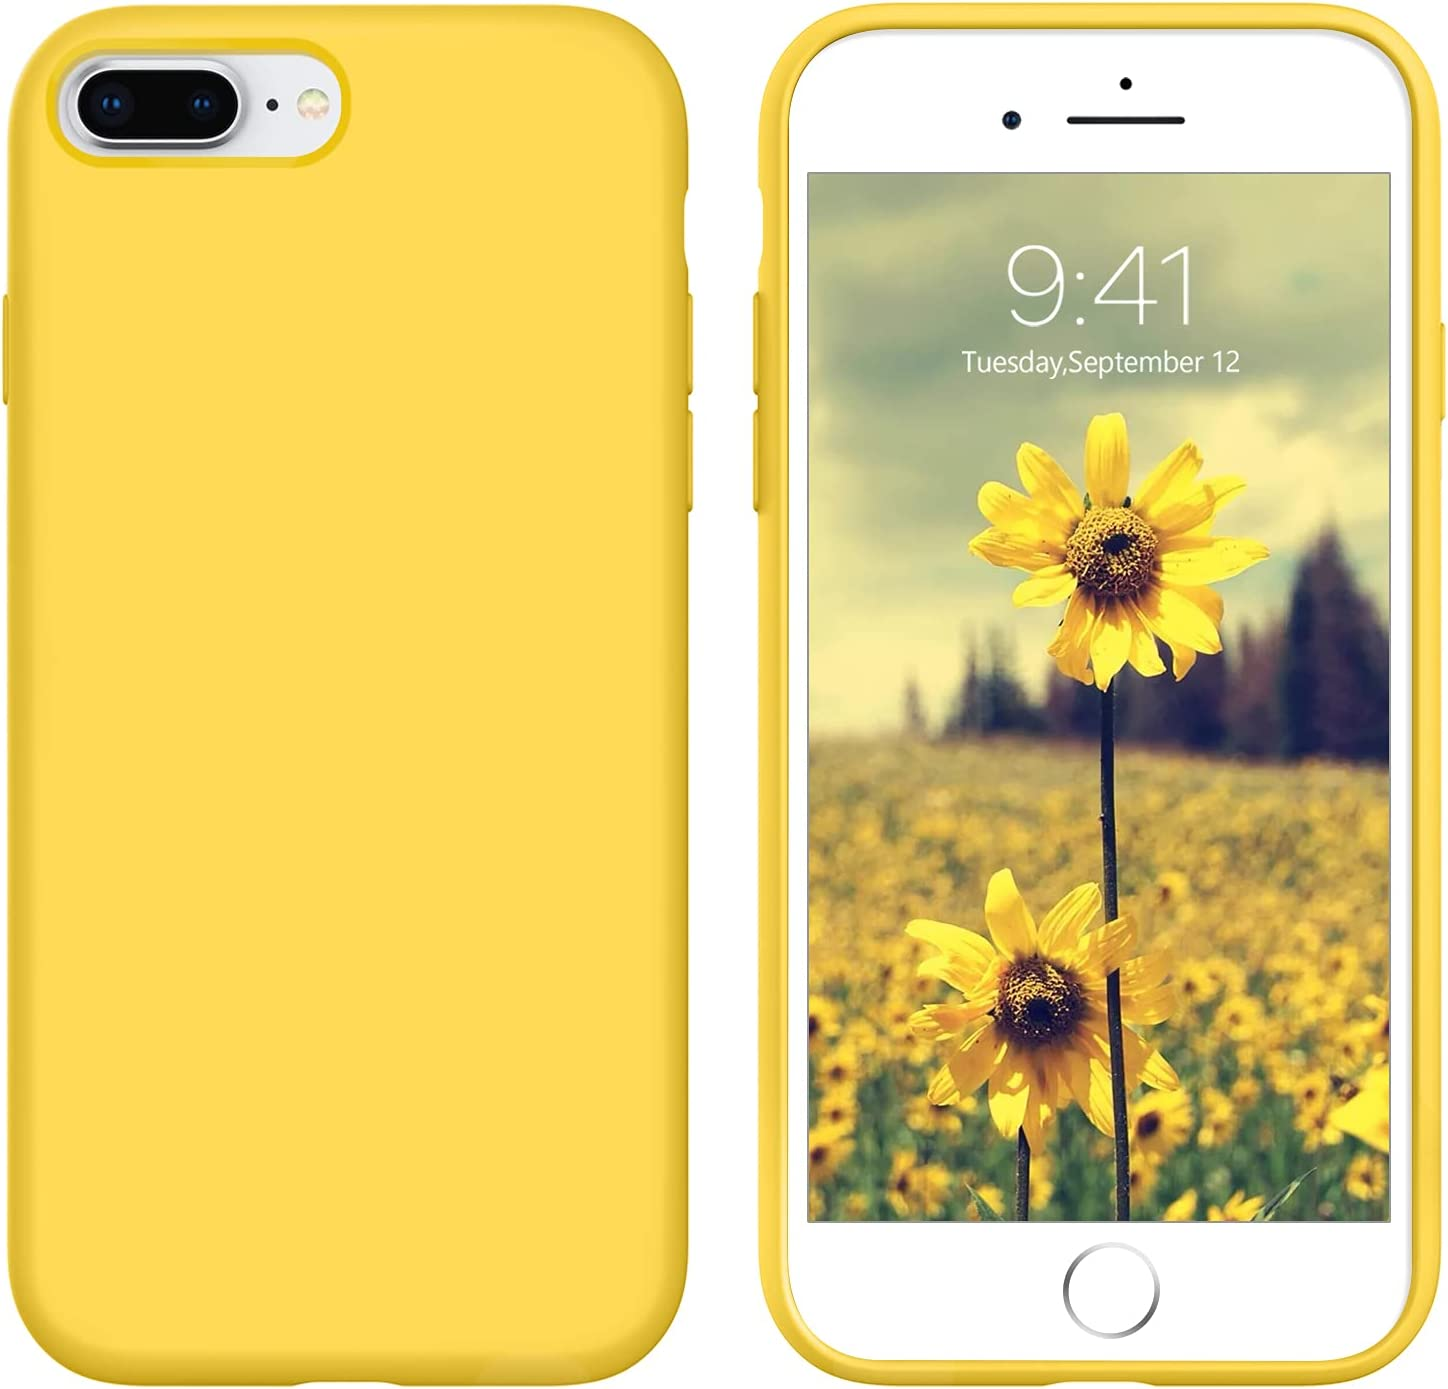 DUEDUE iPhone 8 Plus Case,iPhone 7 Plus Case,Liquid Silicone Soft Gel Rubber Slim Cover with Microfiber Cloth Lining Cushion Shockproof Full Protective Case for iPhone 8 Plus/iPhone 7 Plus, Yellow